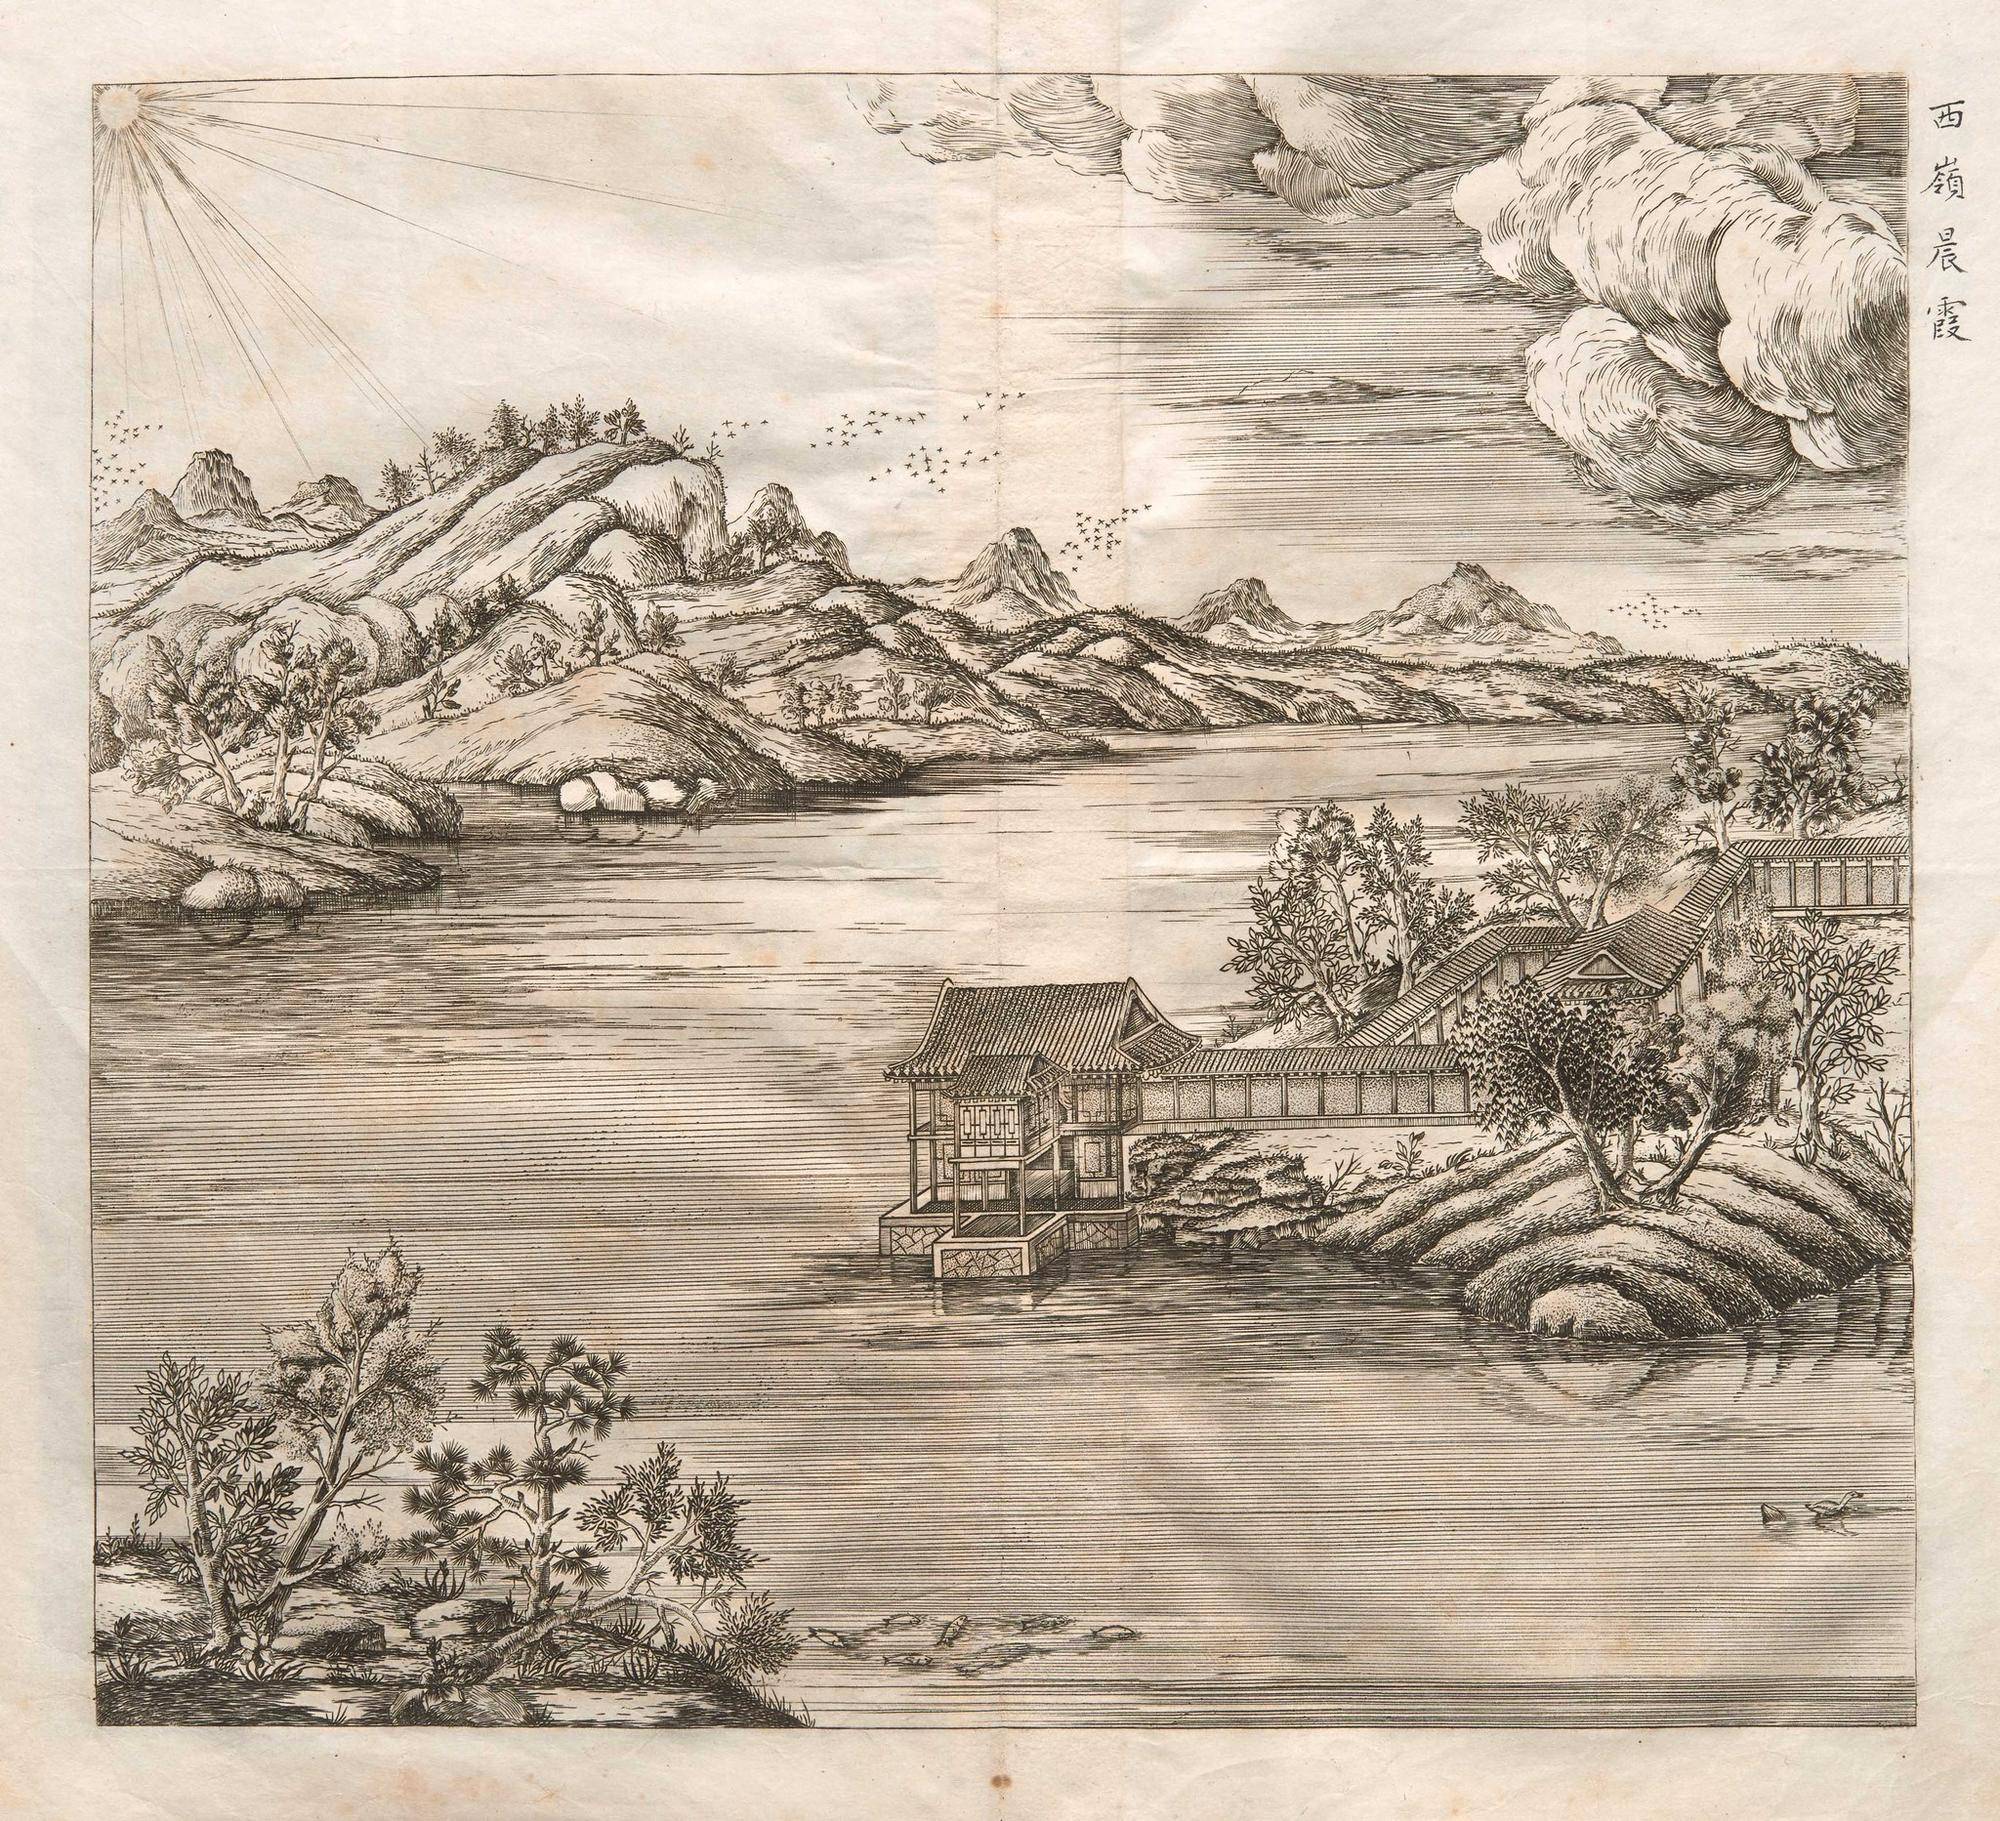 """Morning Mist by the Western Ridge."" Thirty-Six Imperial Views of the Mountain Estate for Escaping the Heat, 1714. Matteo Ripa, also known as Ma Guoxian, artist and engraver, copied from design by Shen Yu. Copperplate engravings, ink on paper, each page 12 1/2 by 7 3/8 inches."